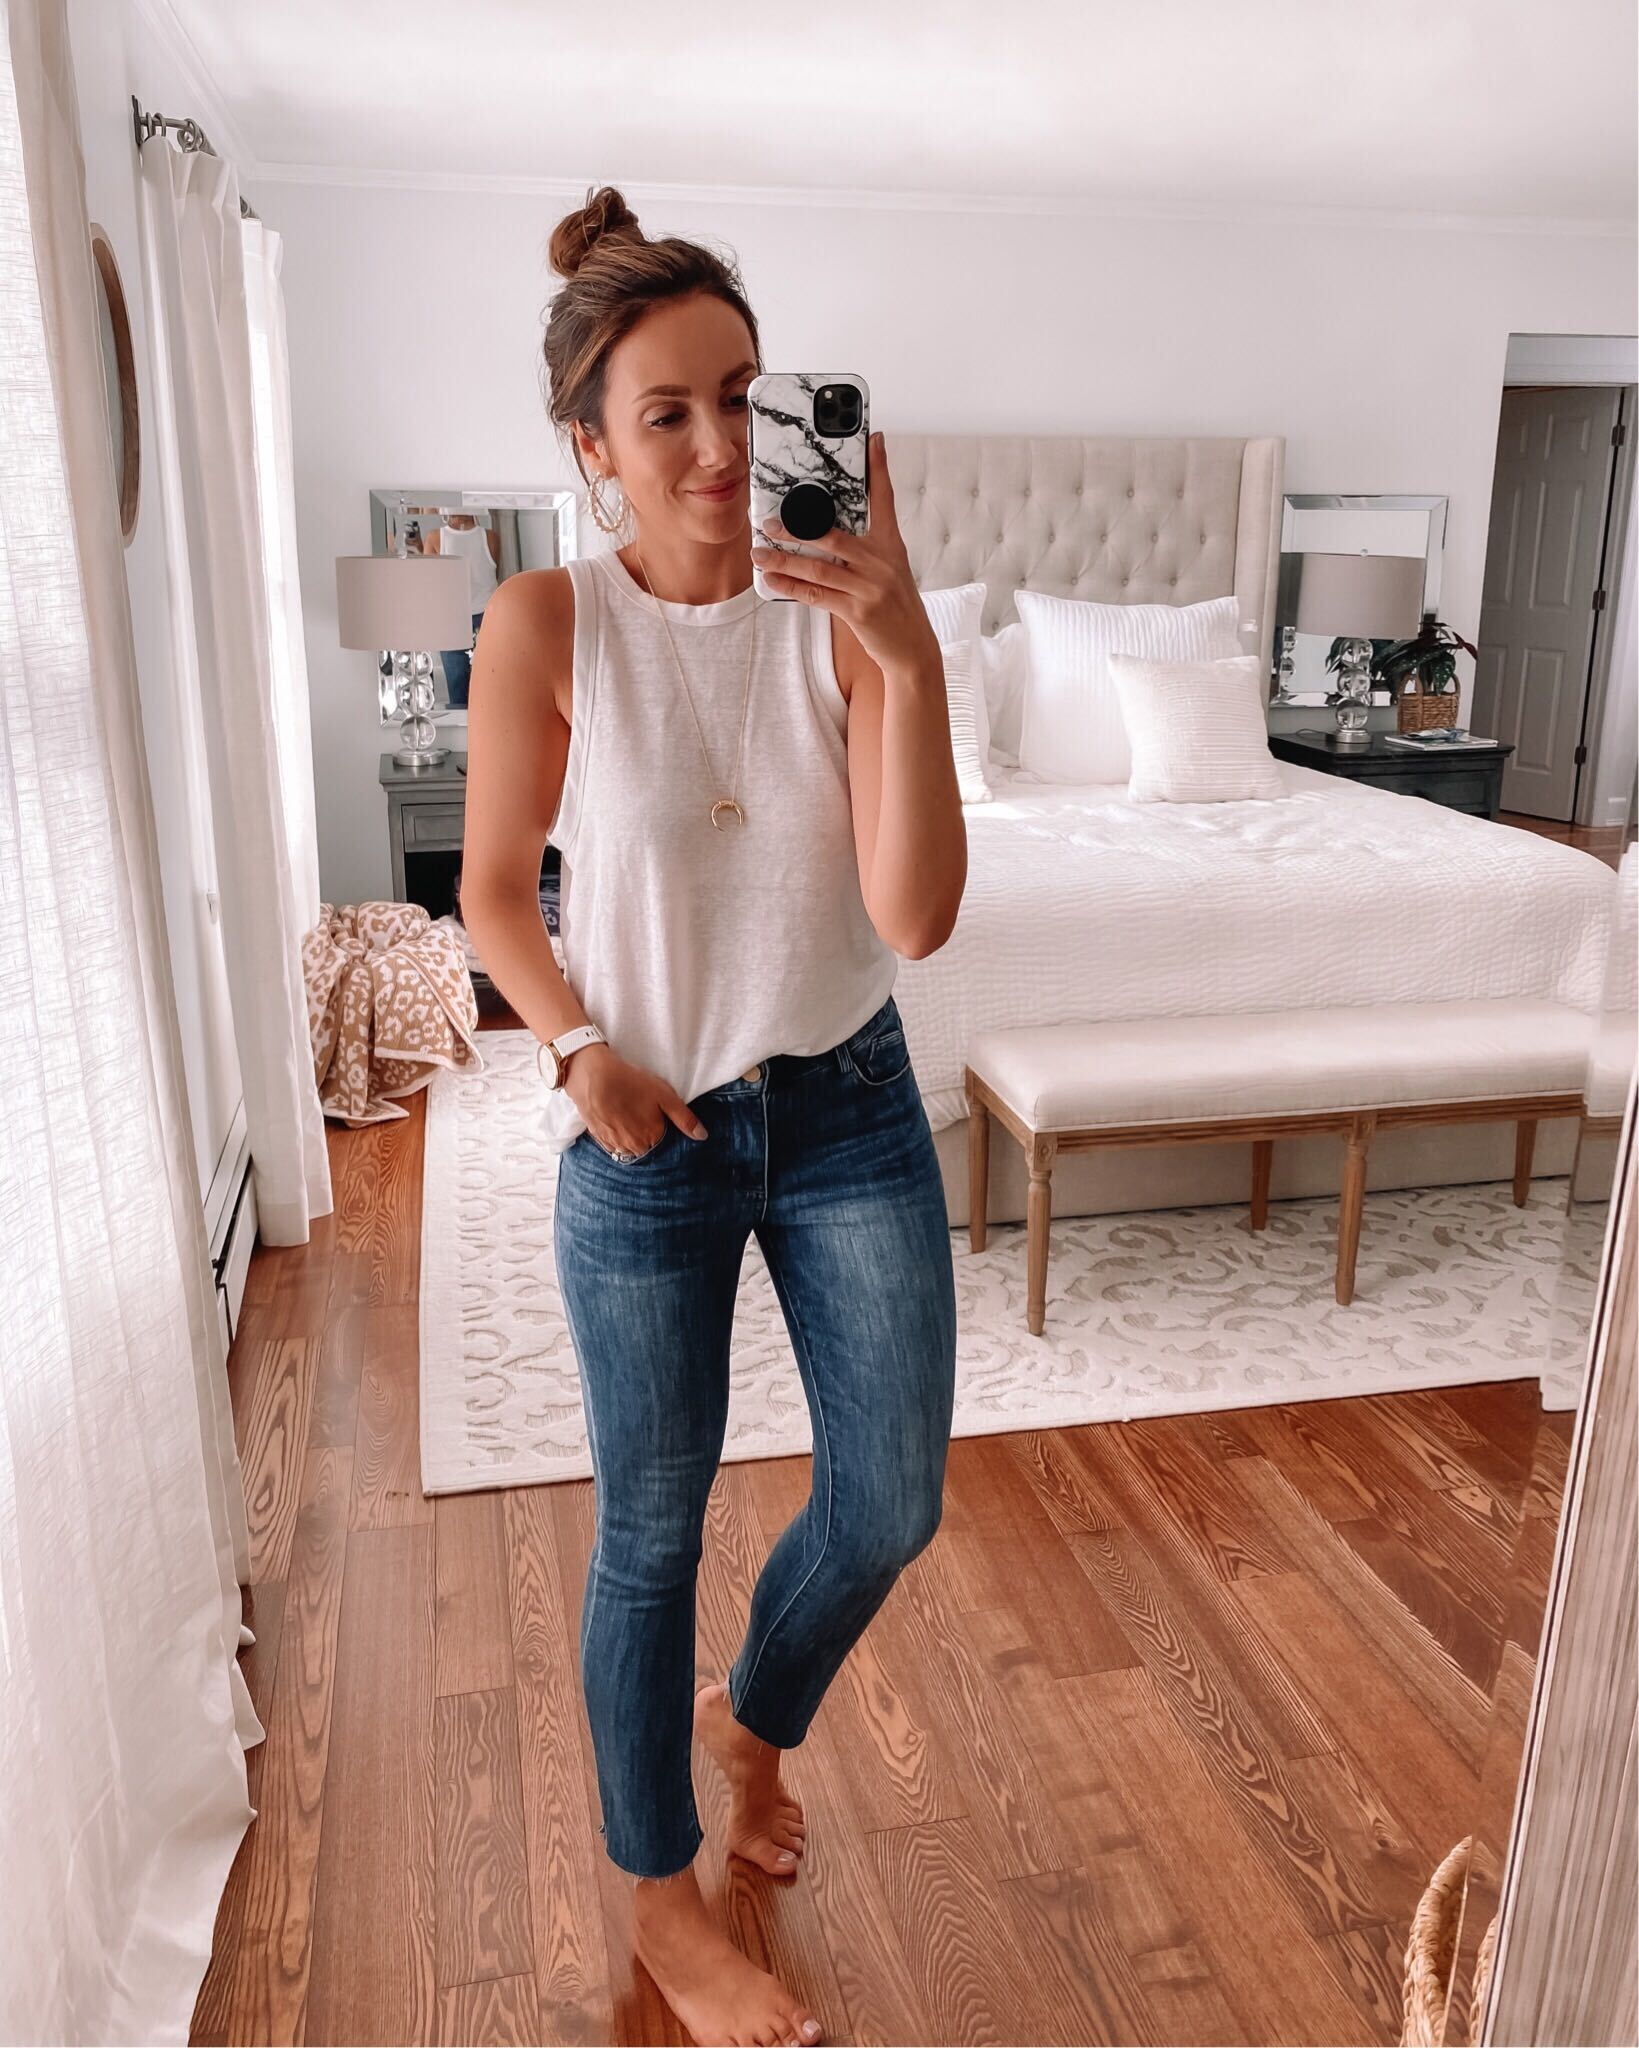 white tank and jeans, casual outfit style